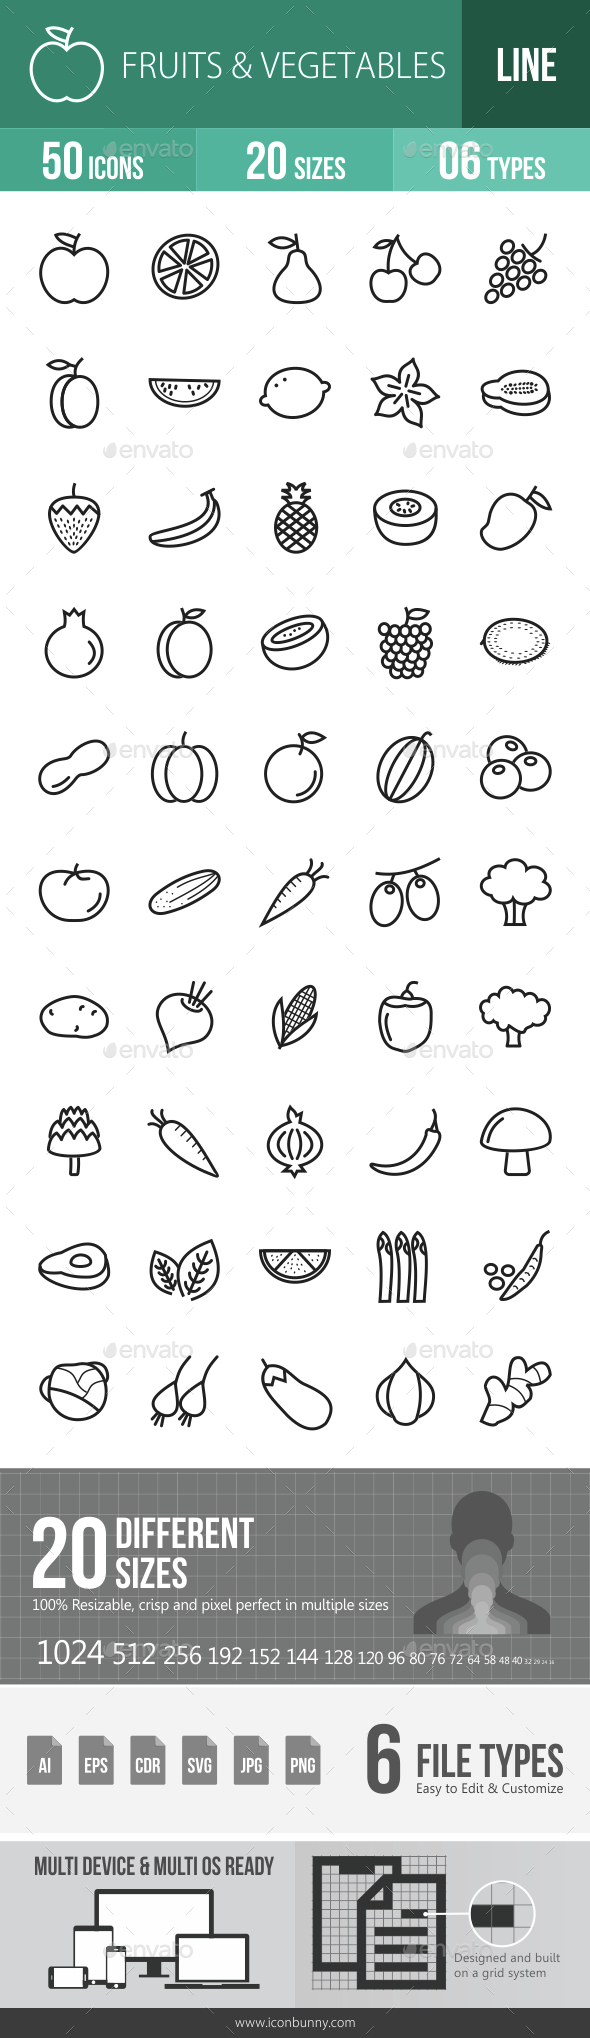 Fruits & Vegetables Line Icons - Icons